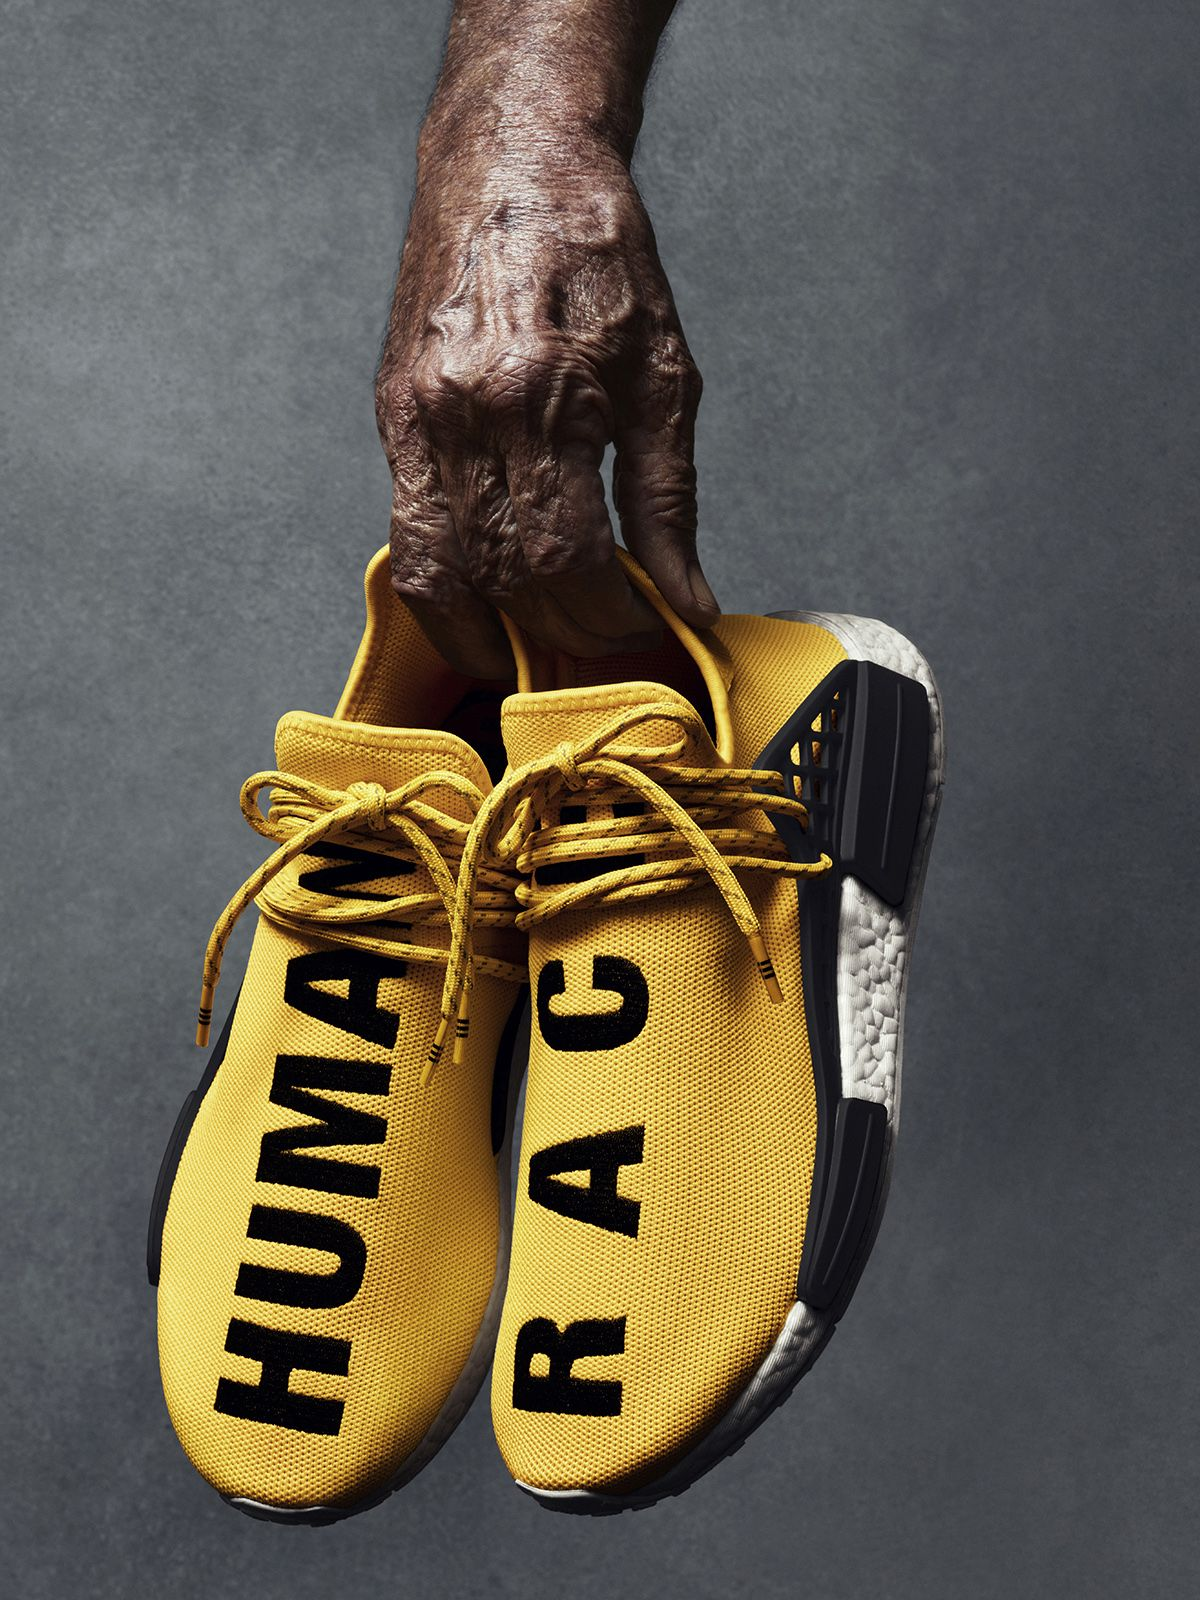 2017 Pharrell Williams Nmd Human Race In Yellow Red Black Blue